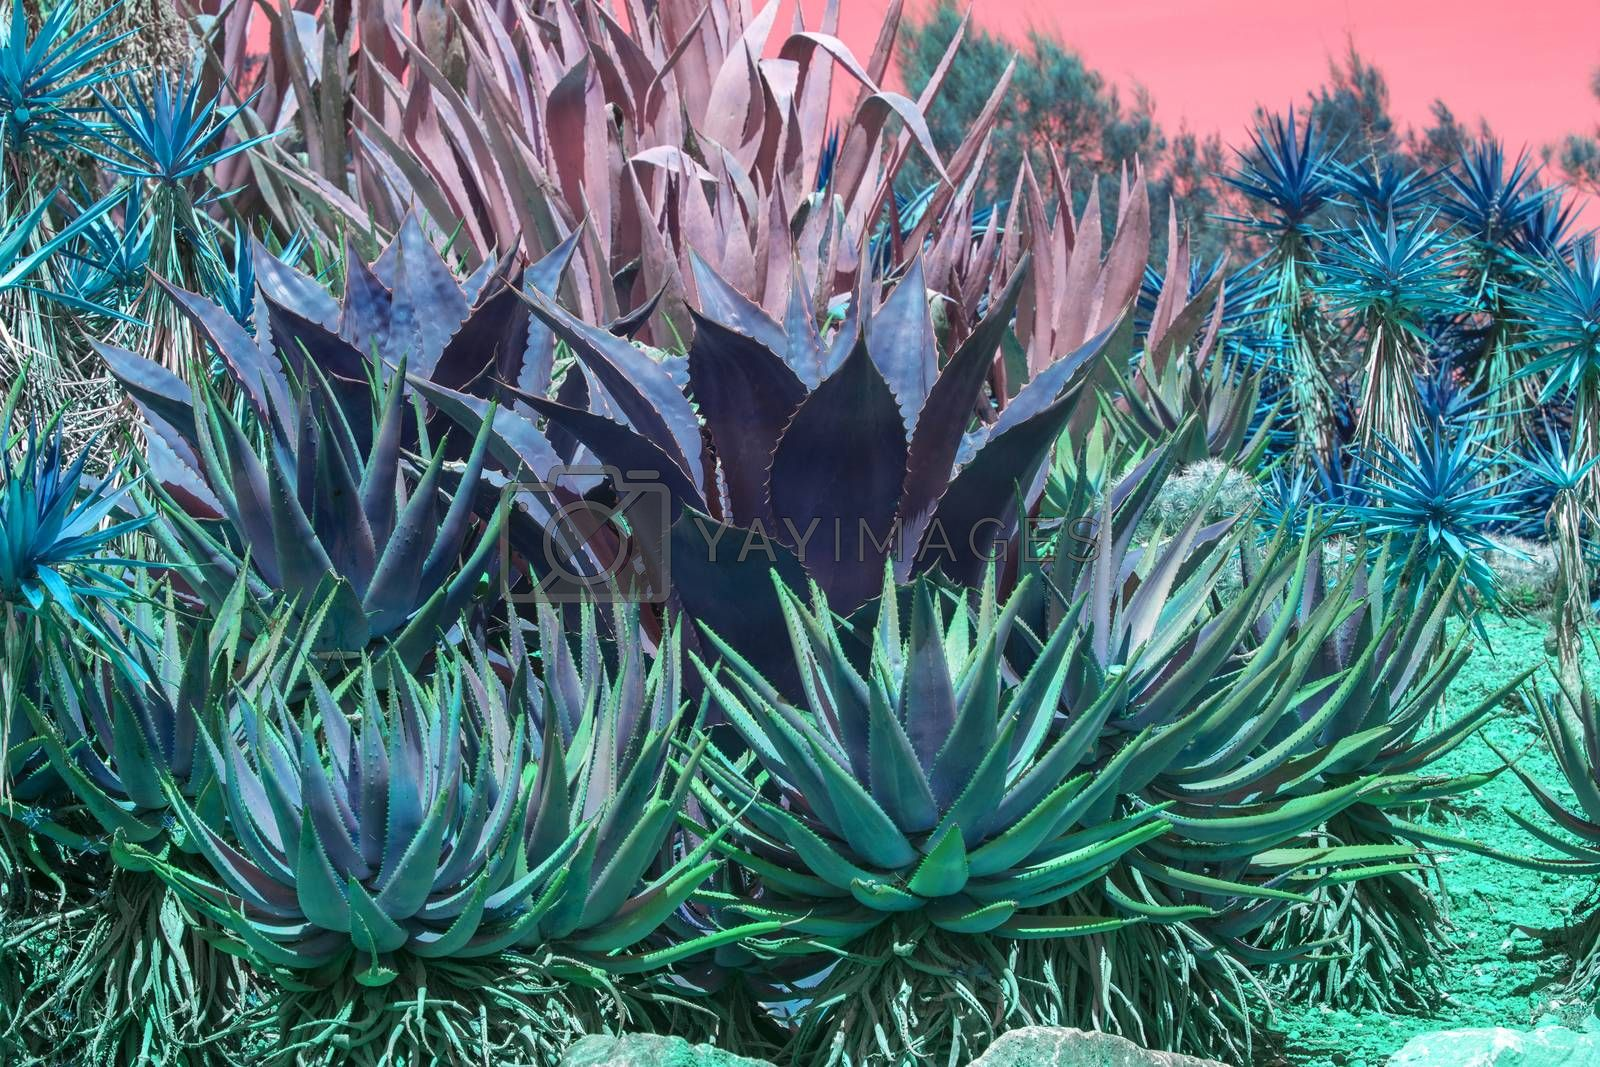 Succulent agave and aloe vera plants pink orange sky by Artesia Wells